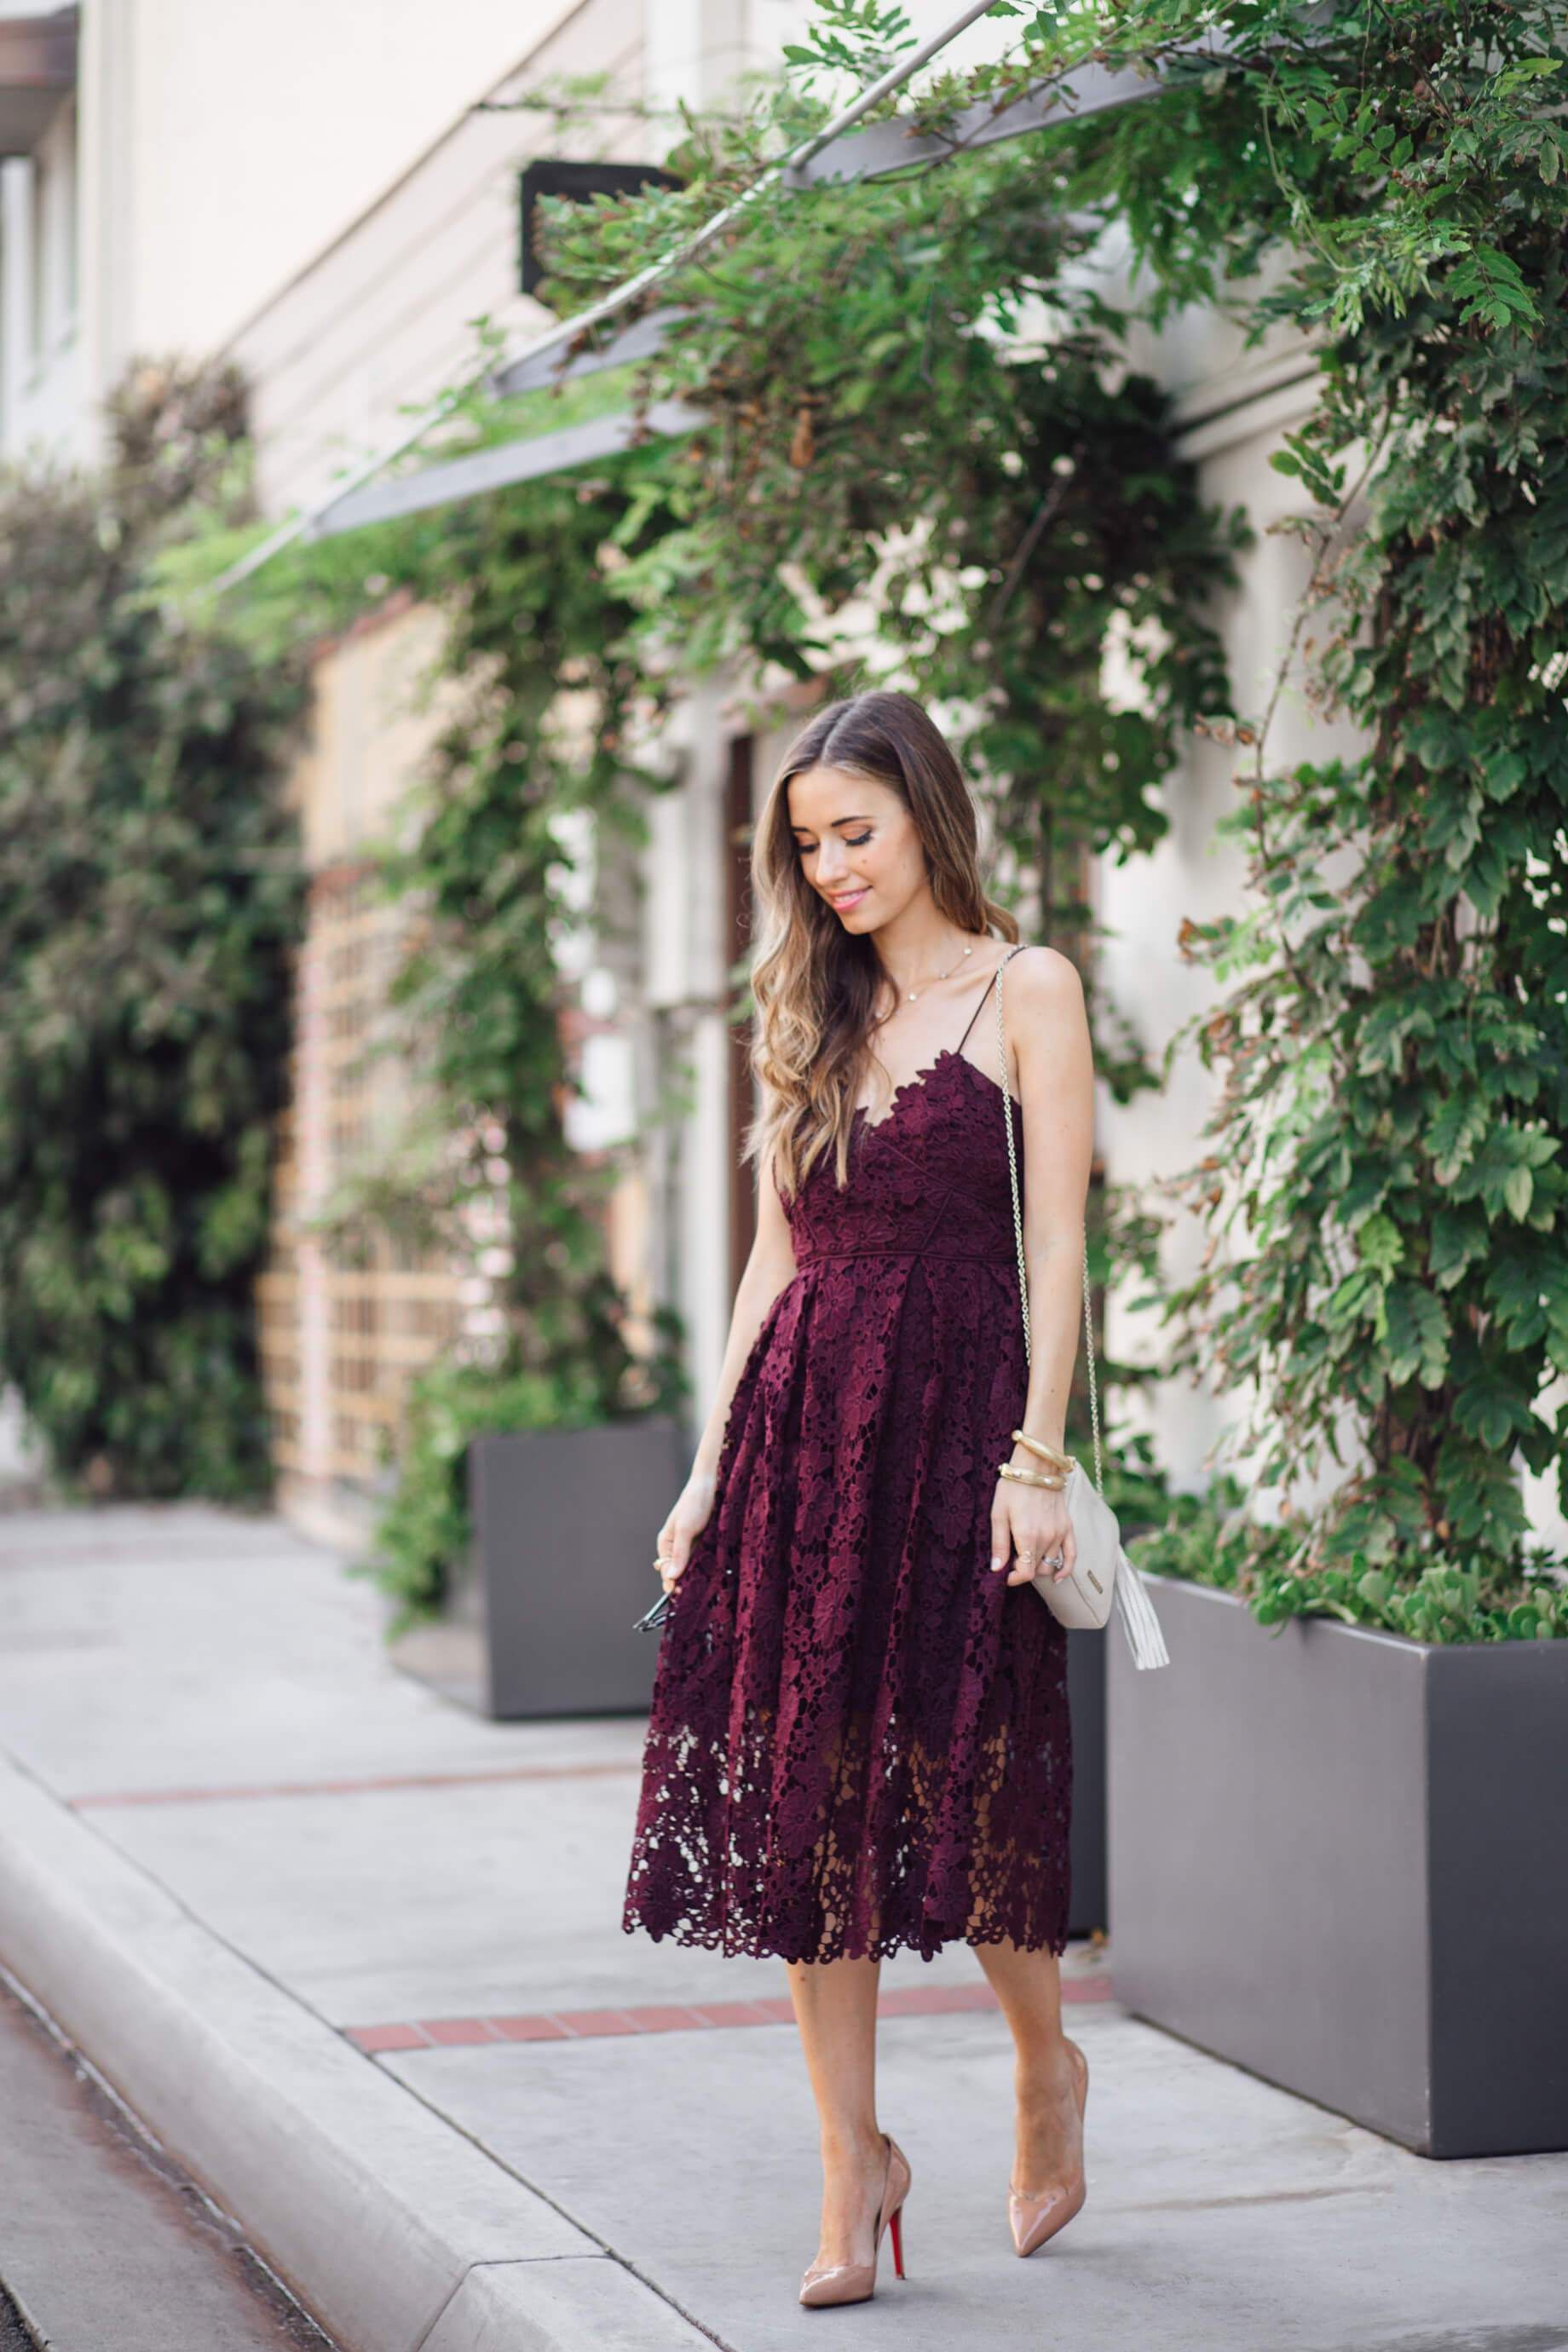 Just Found The Best Dresses For Under 150 For Any Fall Weddings You